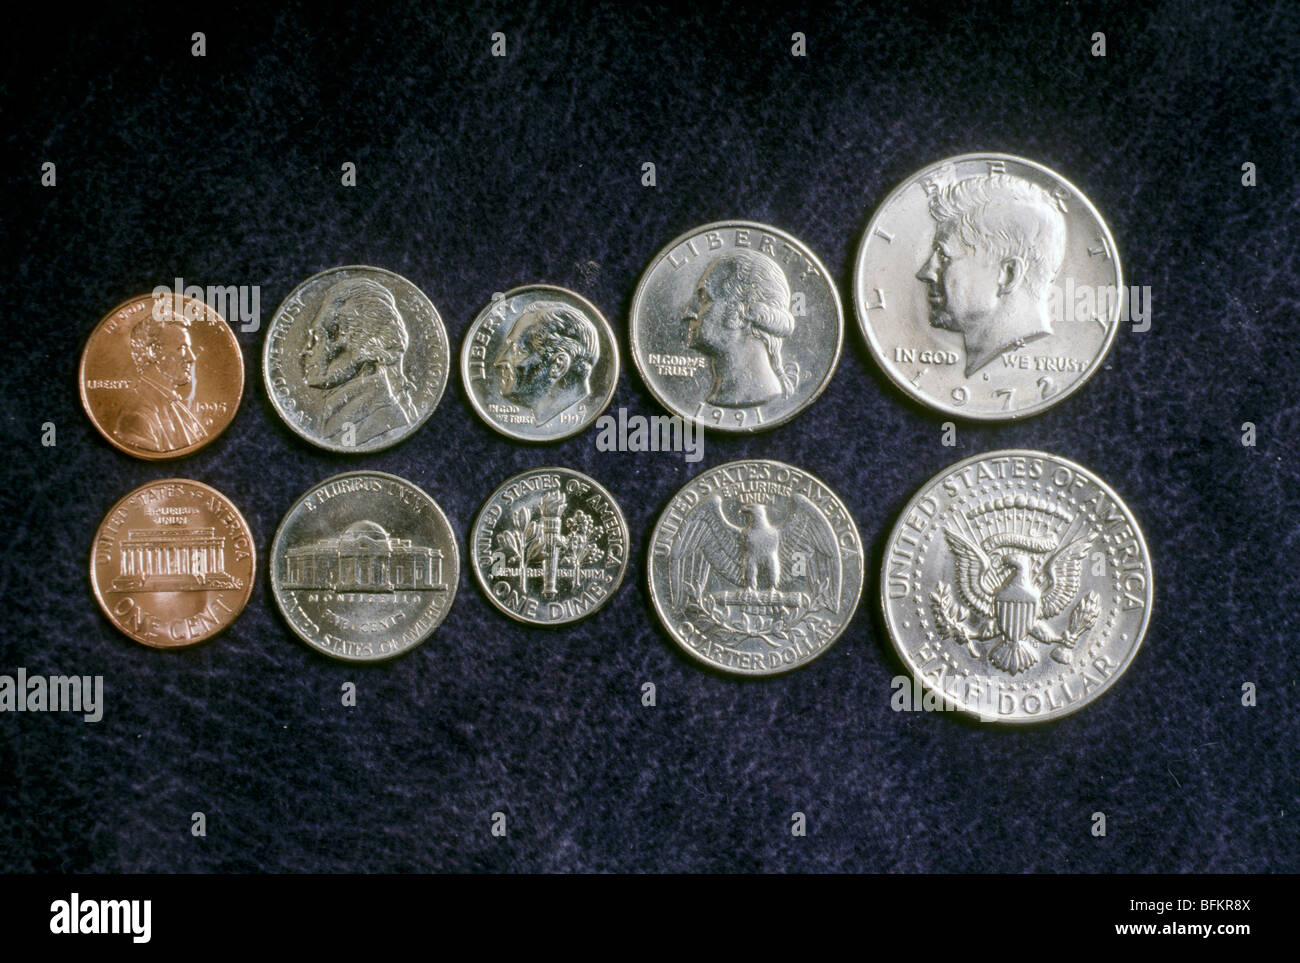 Quarters Dimes Nickels And Pennies